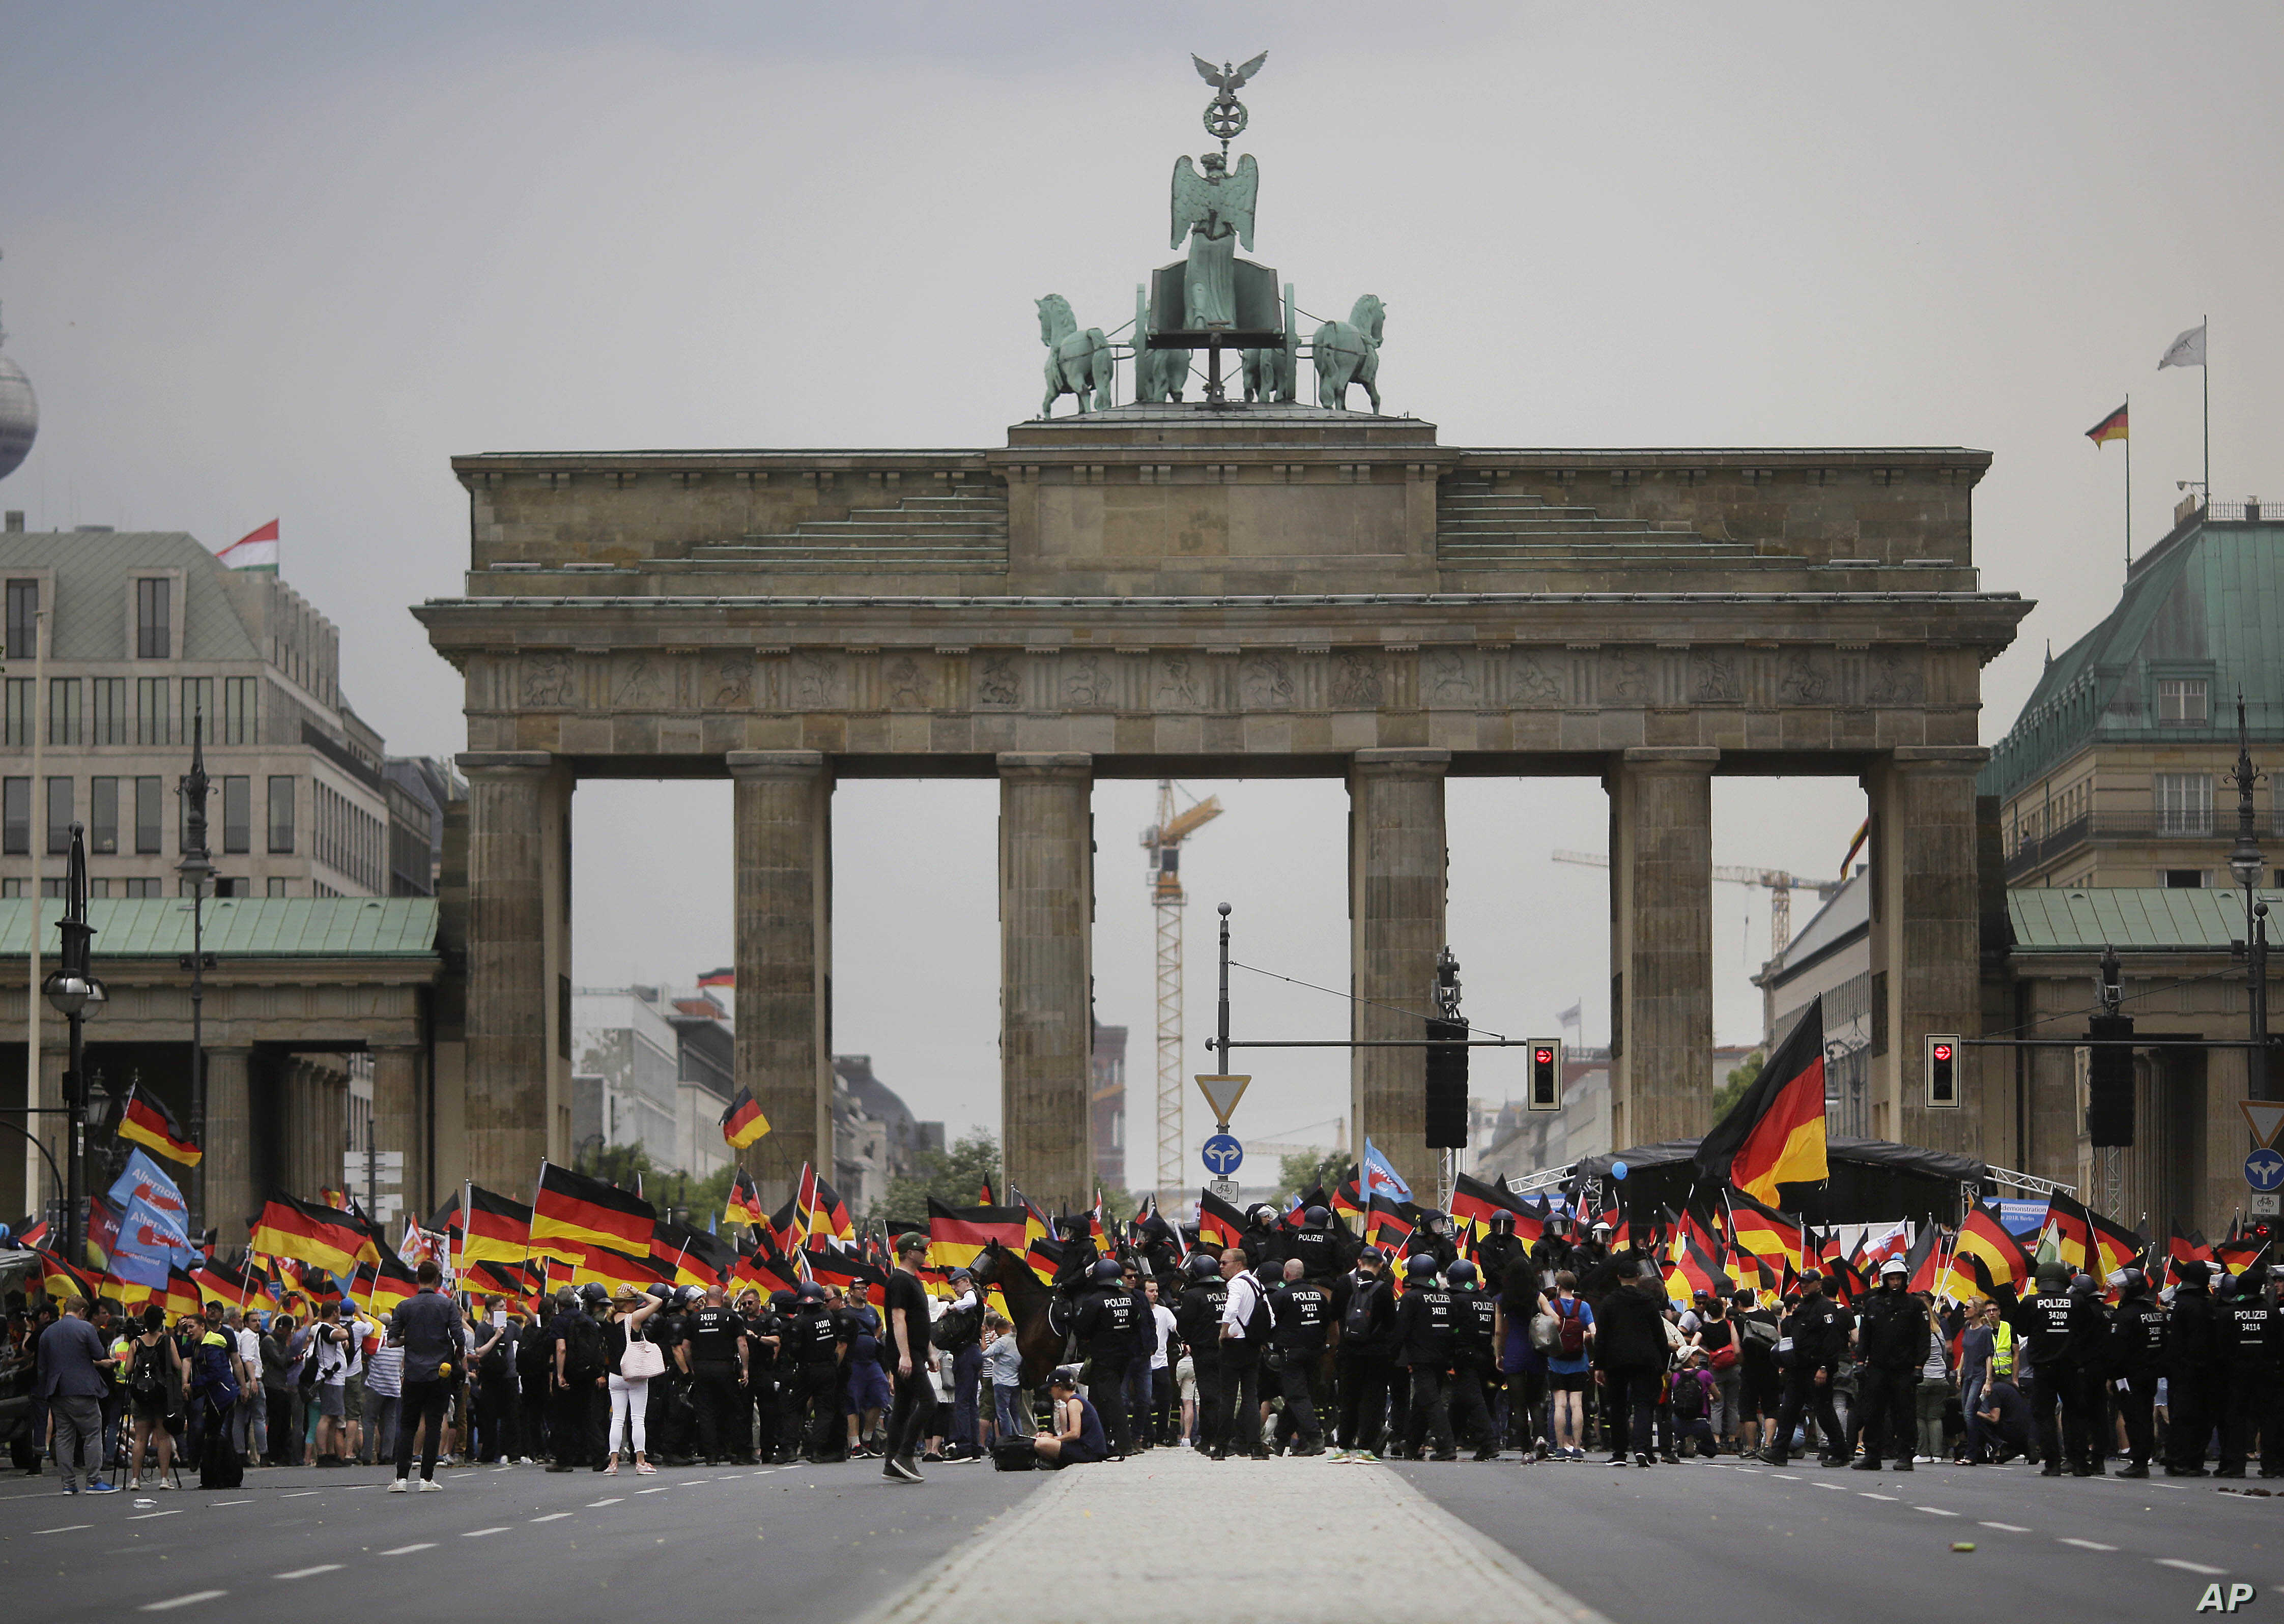 AfD supporters wave flags in front of the Brandenburg Gate in Berlin, Germany, May 27, 2018. The AfD swept into Parliament last year on a wave of anti-migrant sentiment.